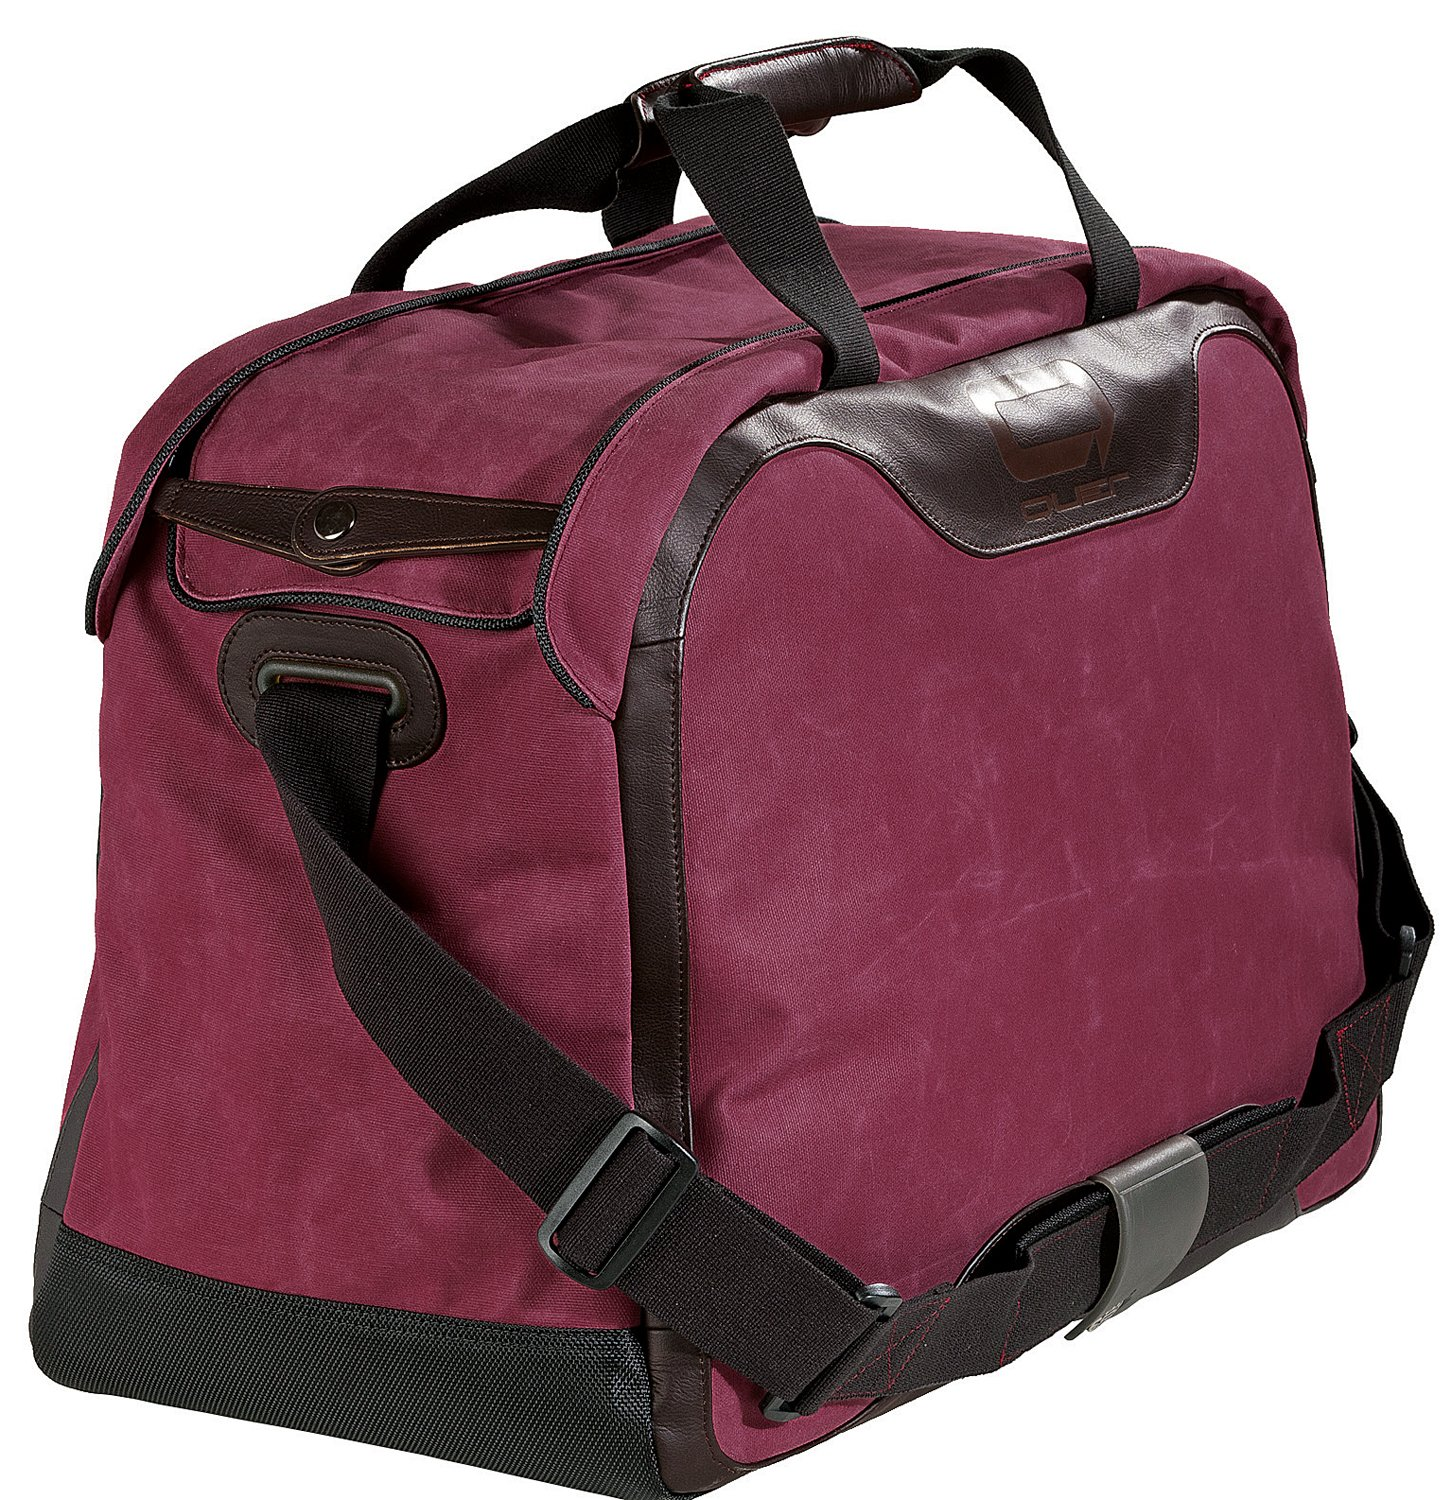 Paysage Duffle Sac de voyage querbag Q3, 403 earth brown (Marron) - 882000403